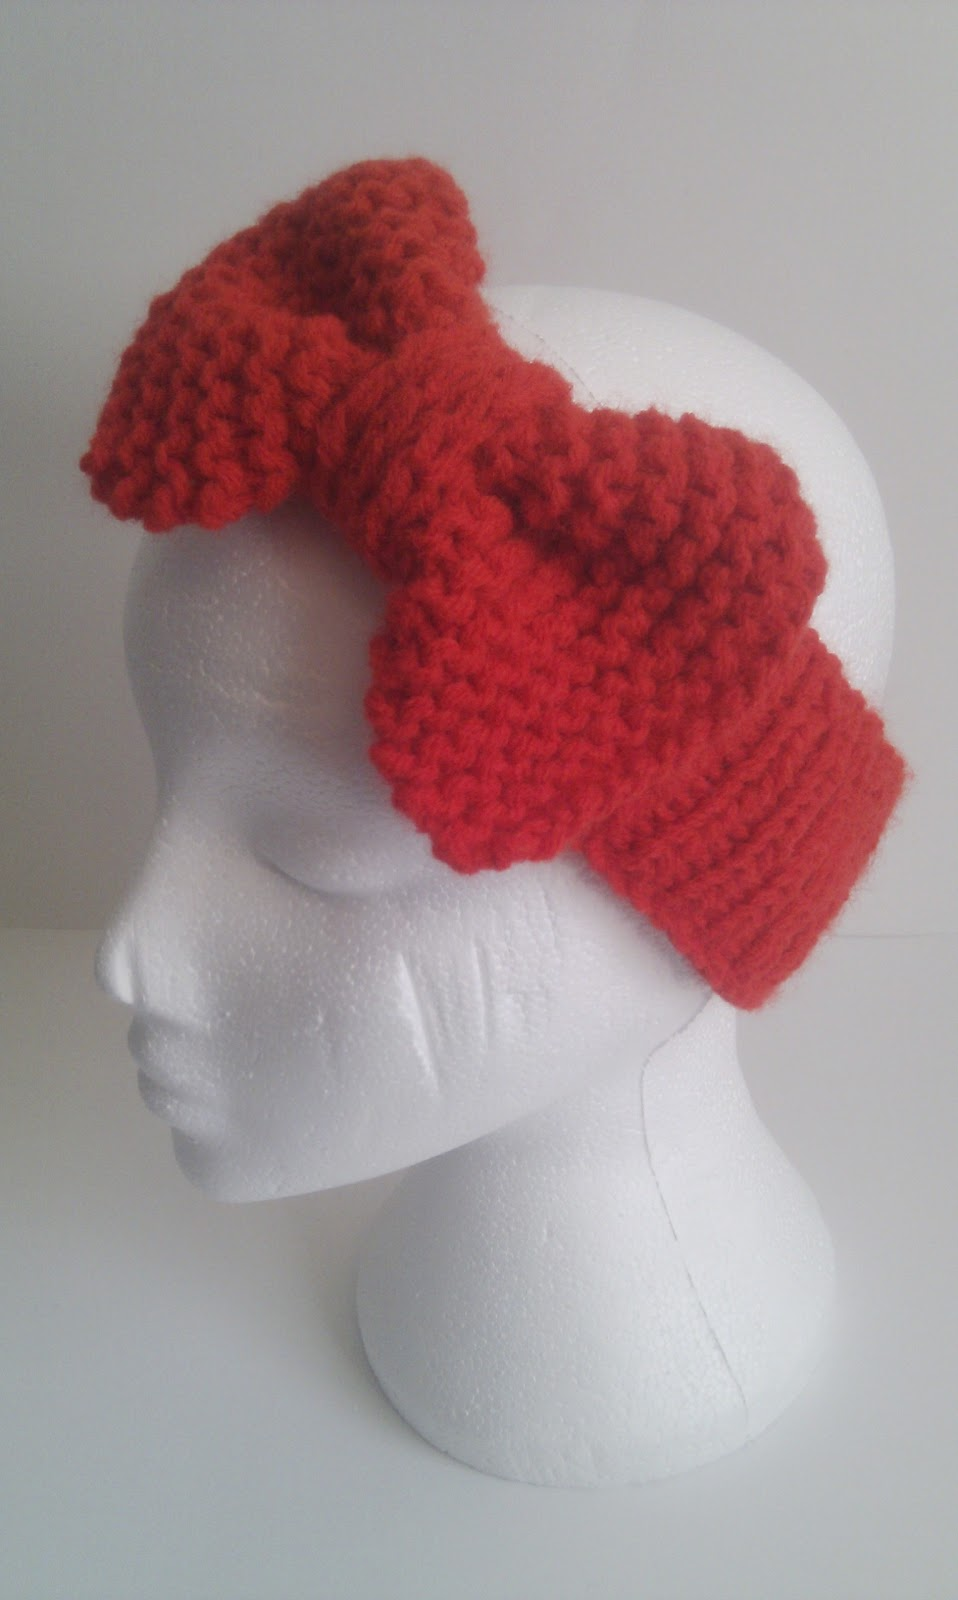 Musings of a knit-a-holic from Wales: Free Knitting Pattern: Beau Bow Headband